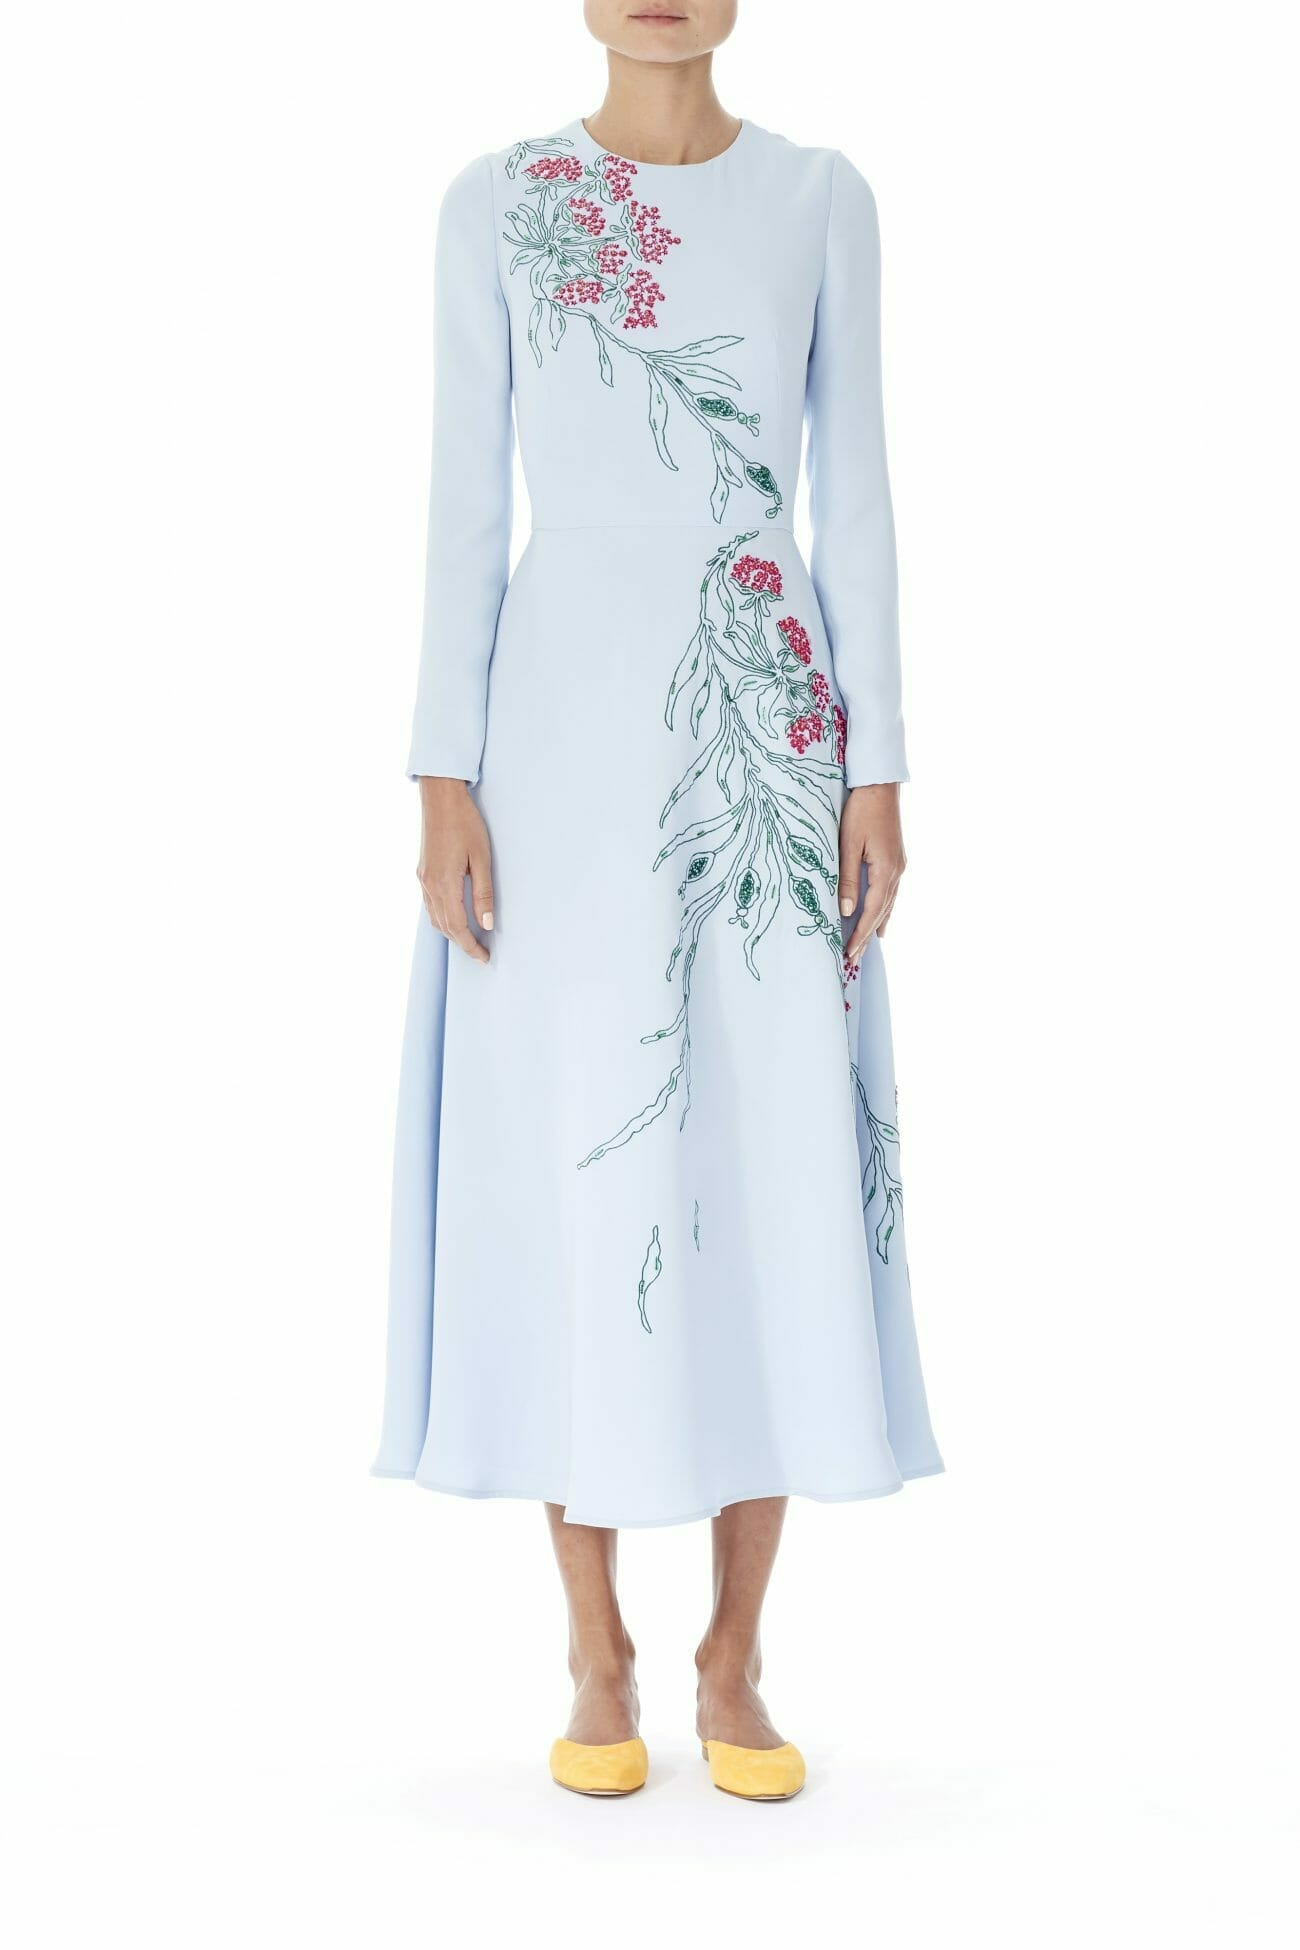 Carolina-Herrera-New-York-Resort-2019-look-15